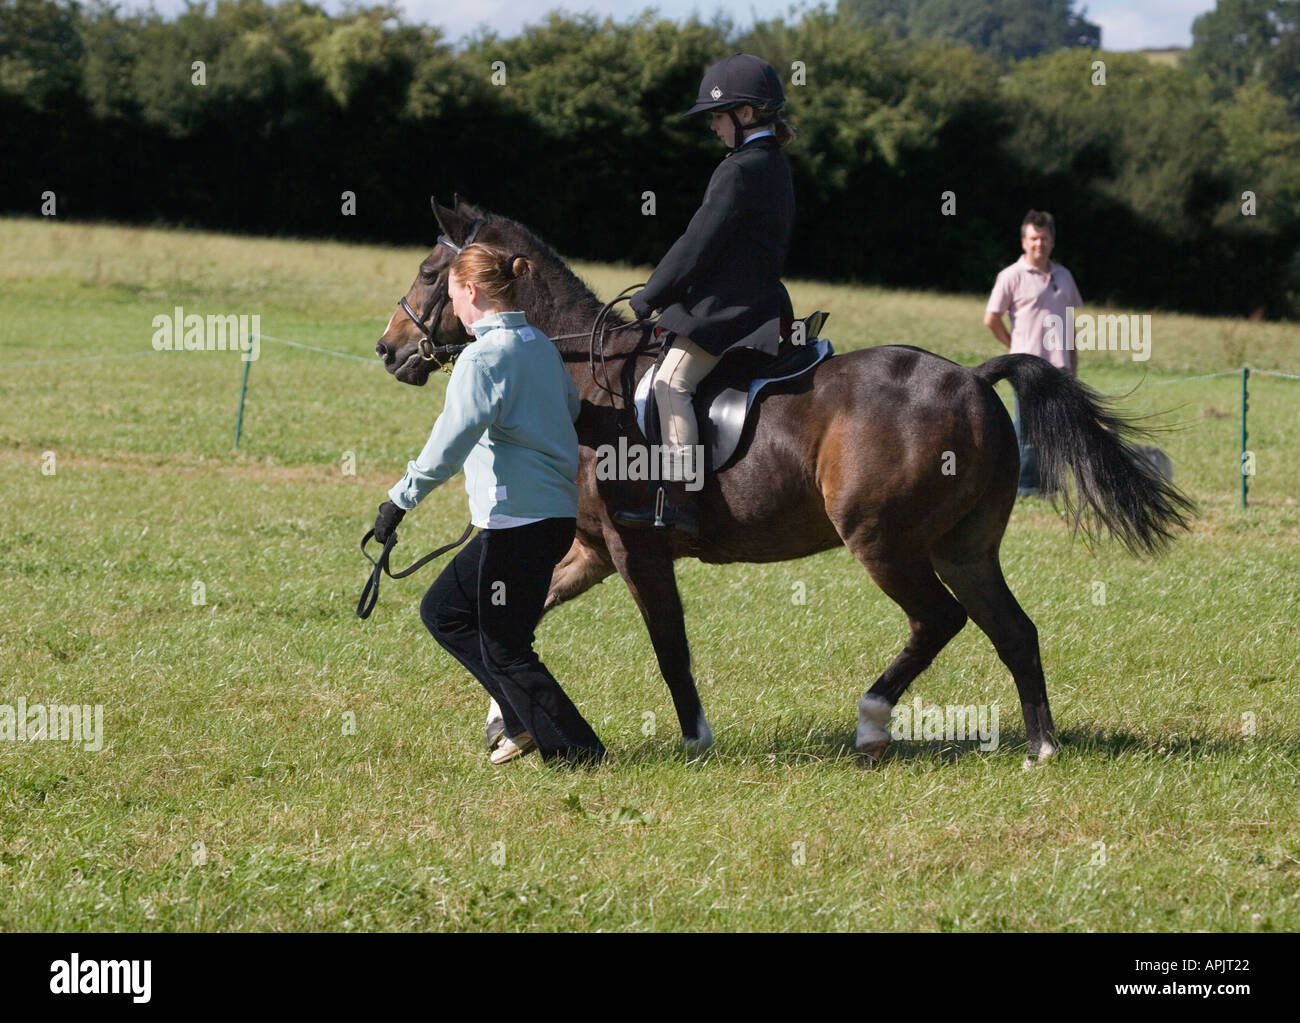 WOMAN RUNNING WITH LITTLE GIRL IN RIDING OUTFIT/ CLOTHES ON SMALL PONY AT EVENT IN UK Stock Photo